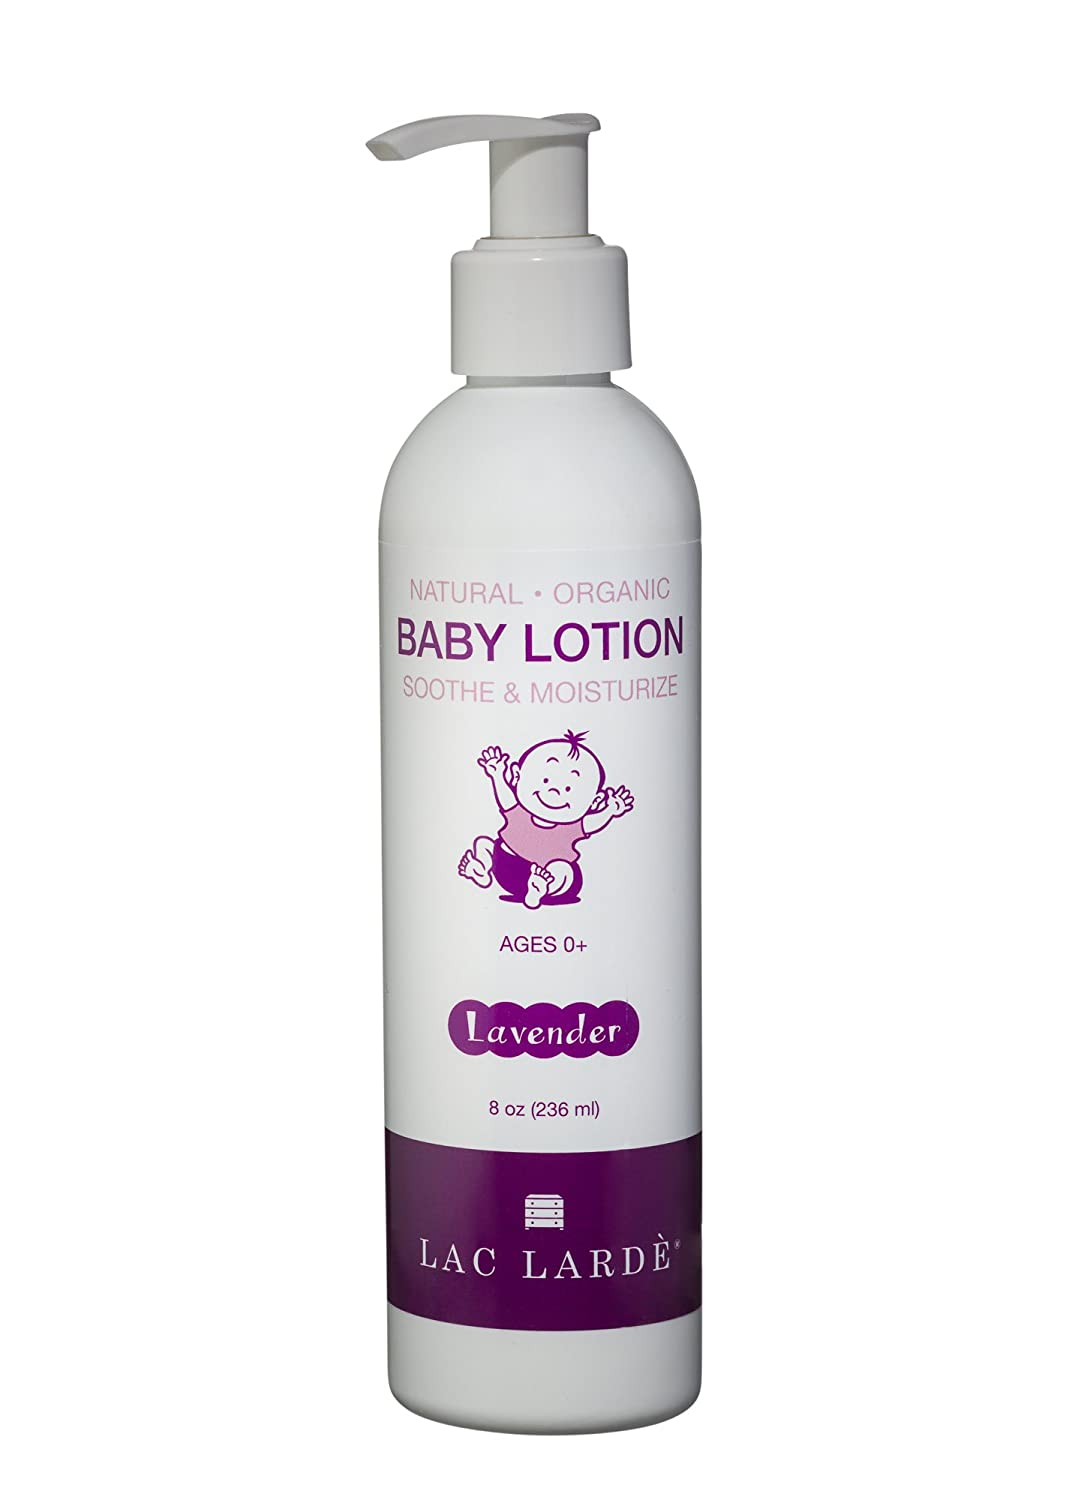 Lac Larde Natural and Organic Low price Soothing Lotion Moisturizer Ranking TOP5 Baby